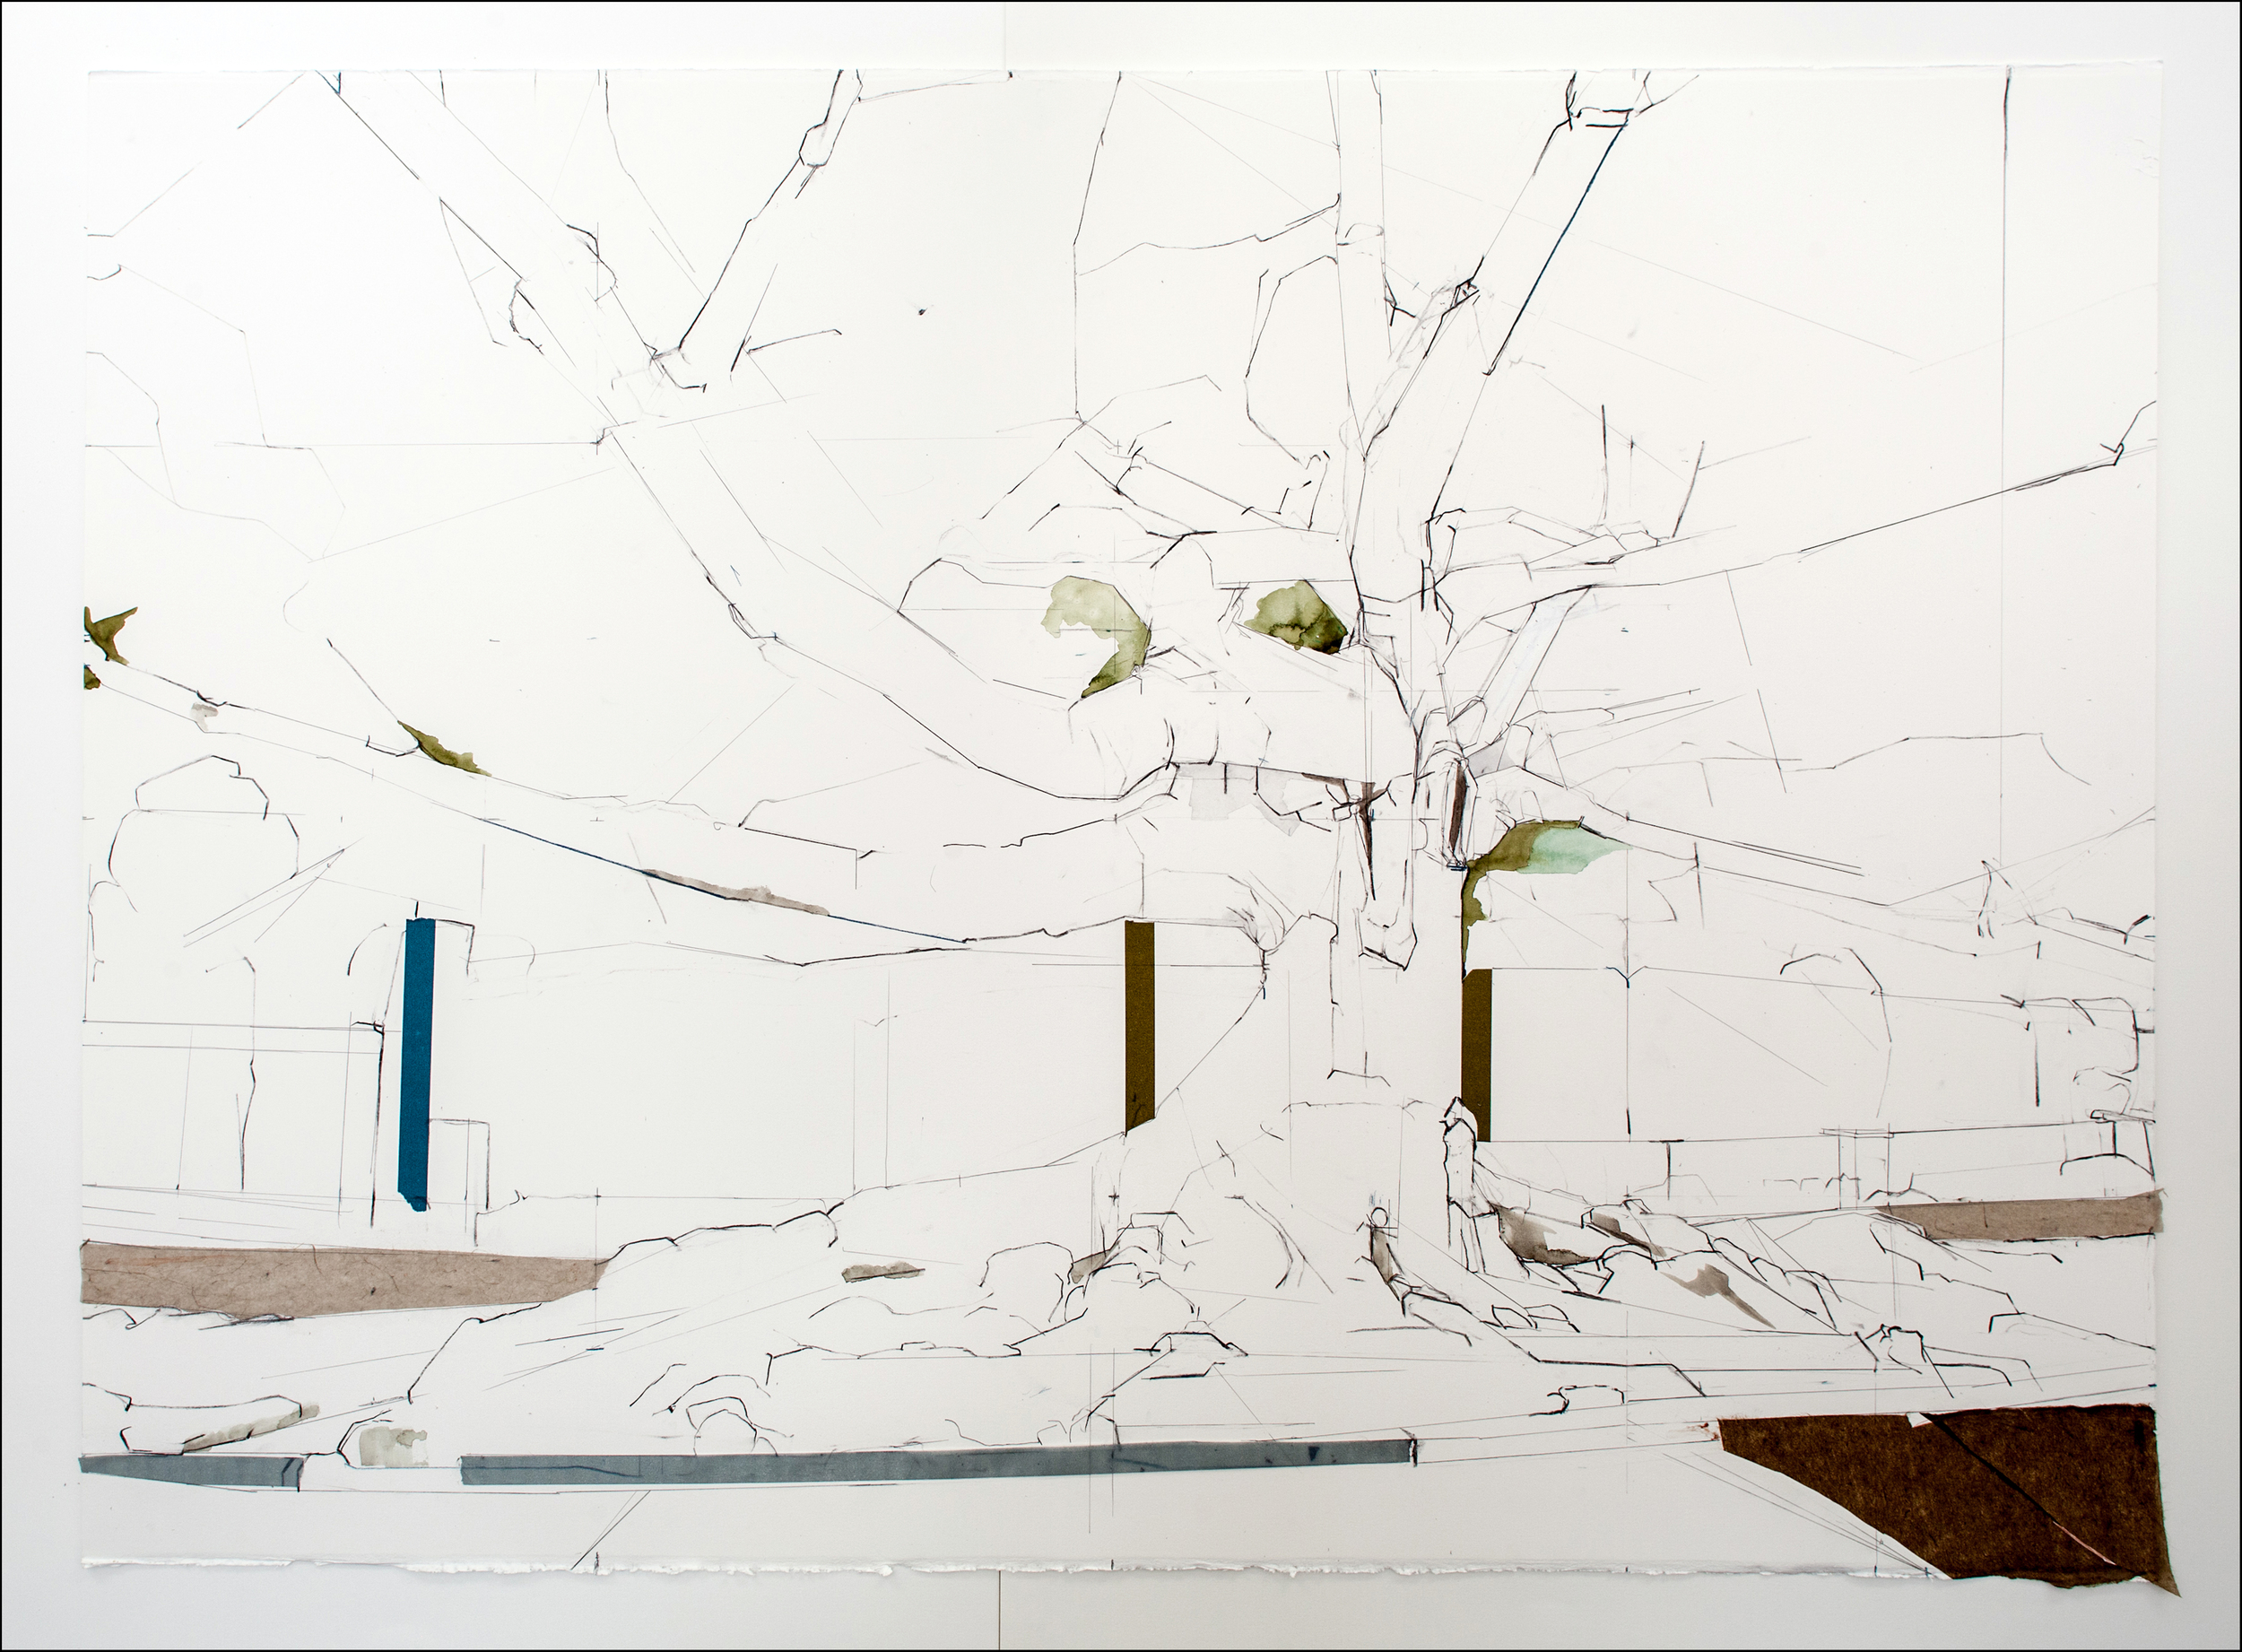 """34° 02' 55.00"""" N 118° 29' 39.55"""" W,  2012, Mixed Media on paper (38 inchesx 48 inches) (framed)"""